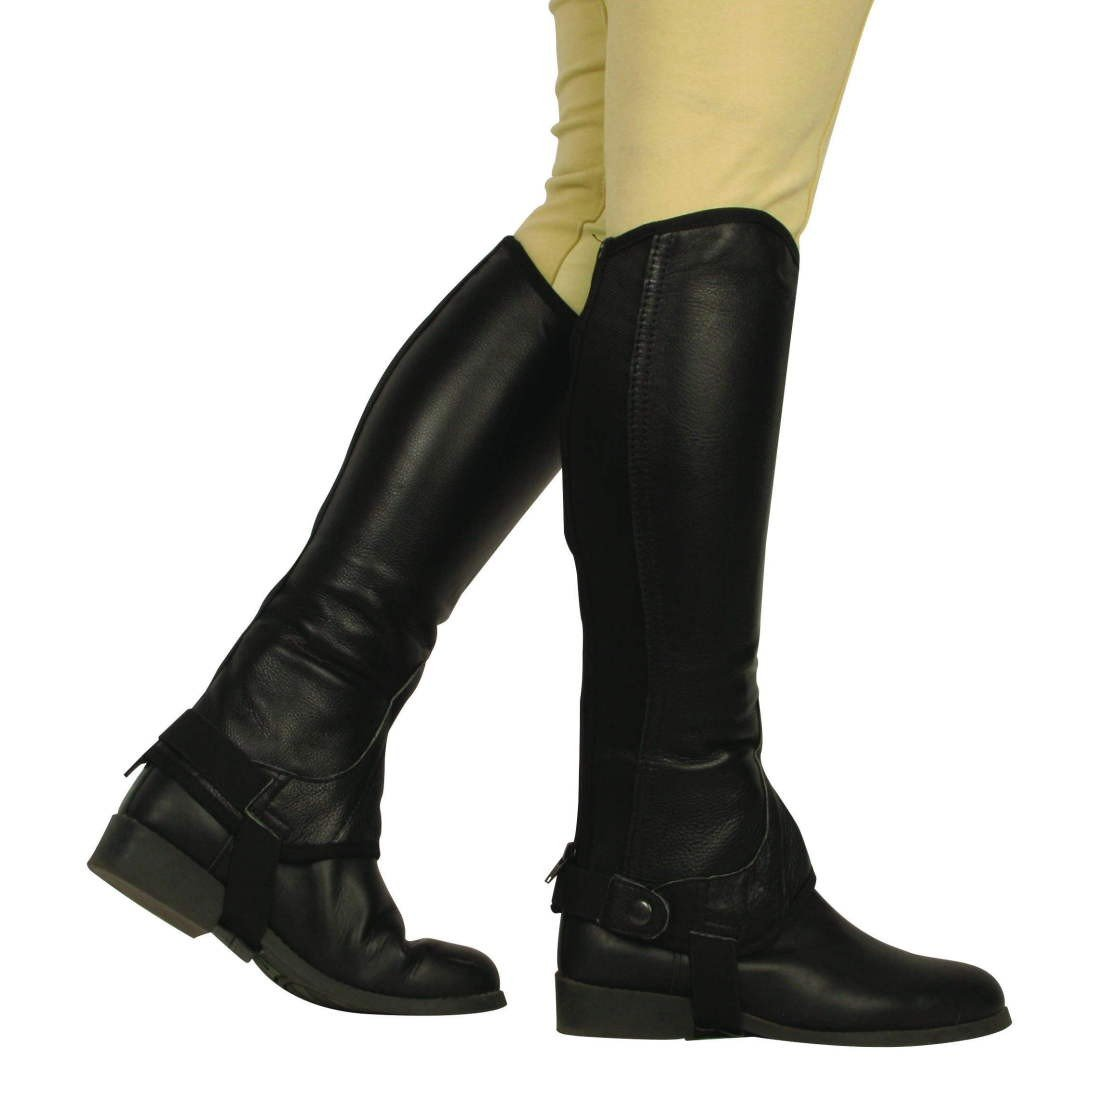 CY67F43L Women Black Riders Trend Equi Leather Synthetic Gaiters with Amara Lining Immediate Delivery